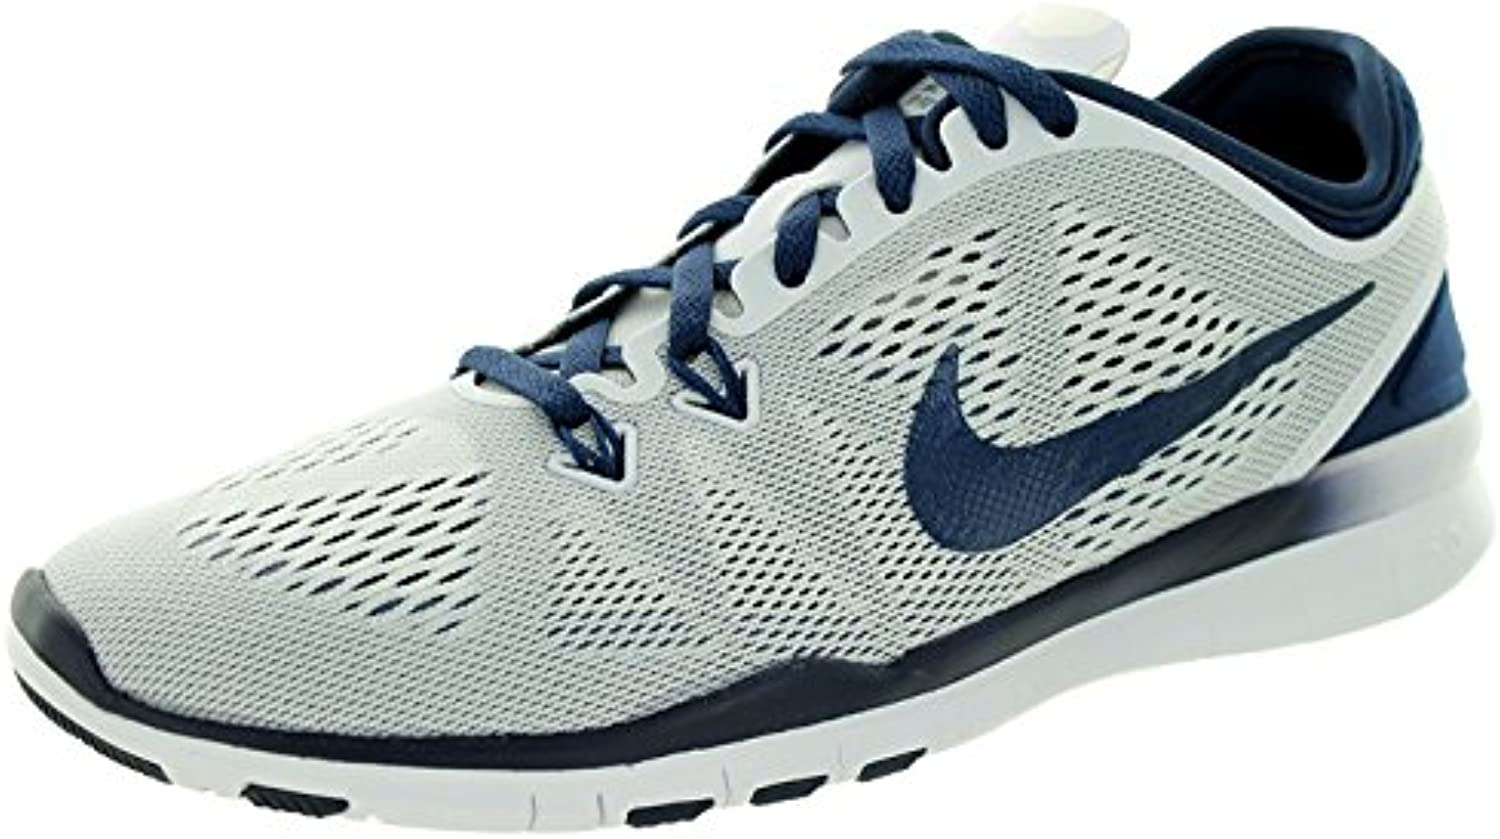 Nike Women'S Free 5.0 TR Fit 5 PRT Training Shoe Women US, White/Midnight Navy, 37.5 B(M) EU/4 B(M) UK